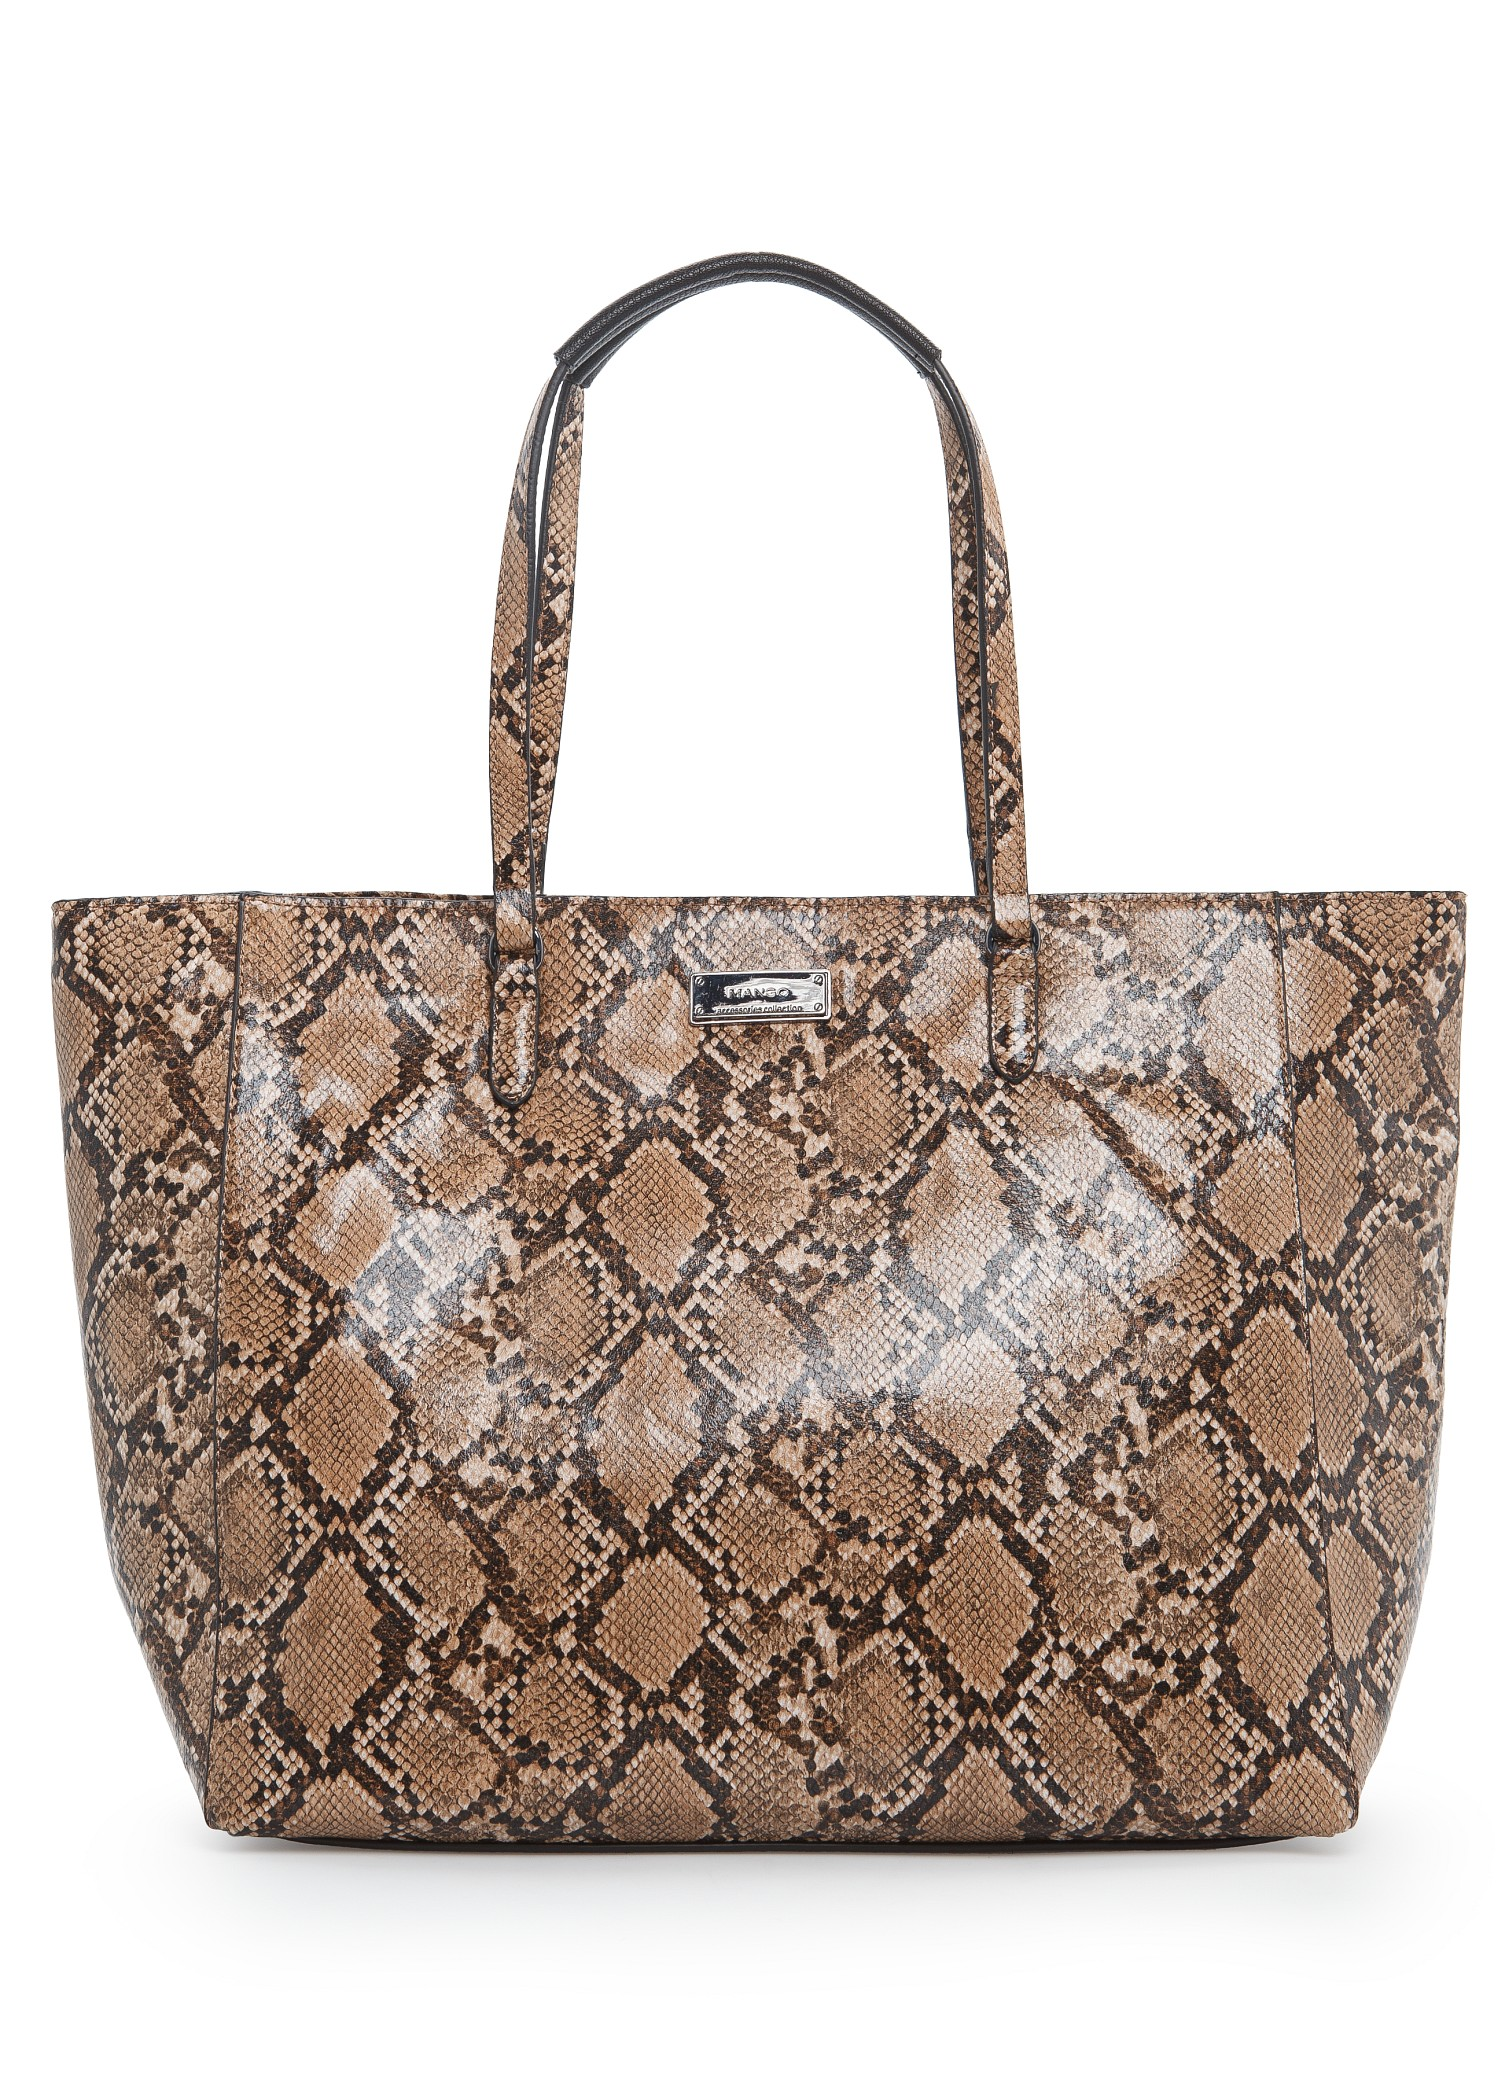 Get the best deals on faux snakeskin handbags and save up to 70% off at Poshmark now! Whatever you're shopping for, we've got it.